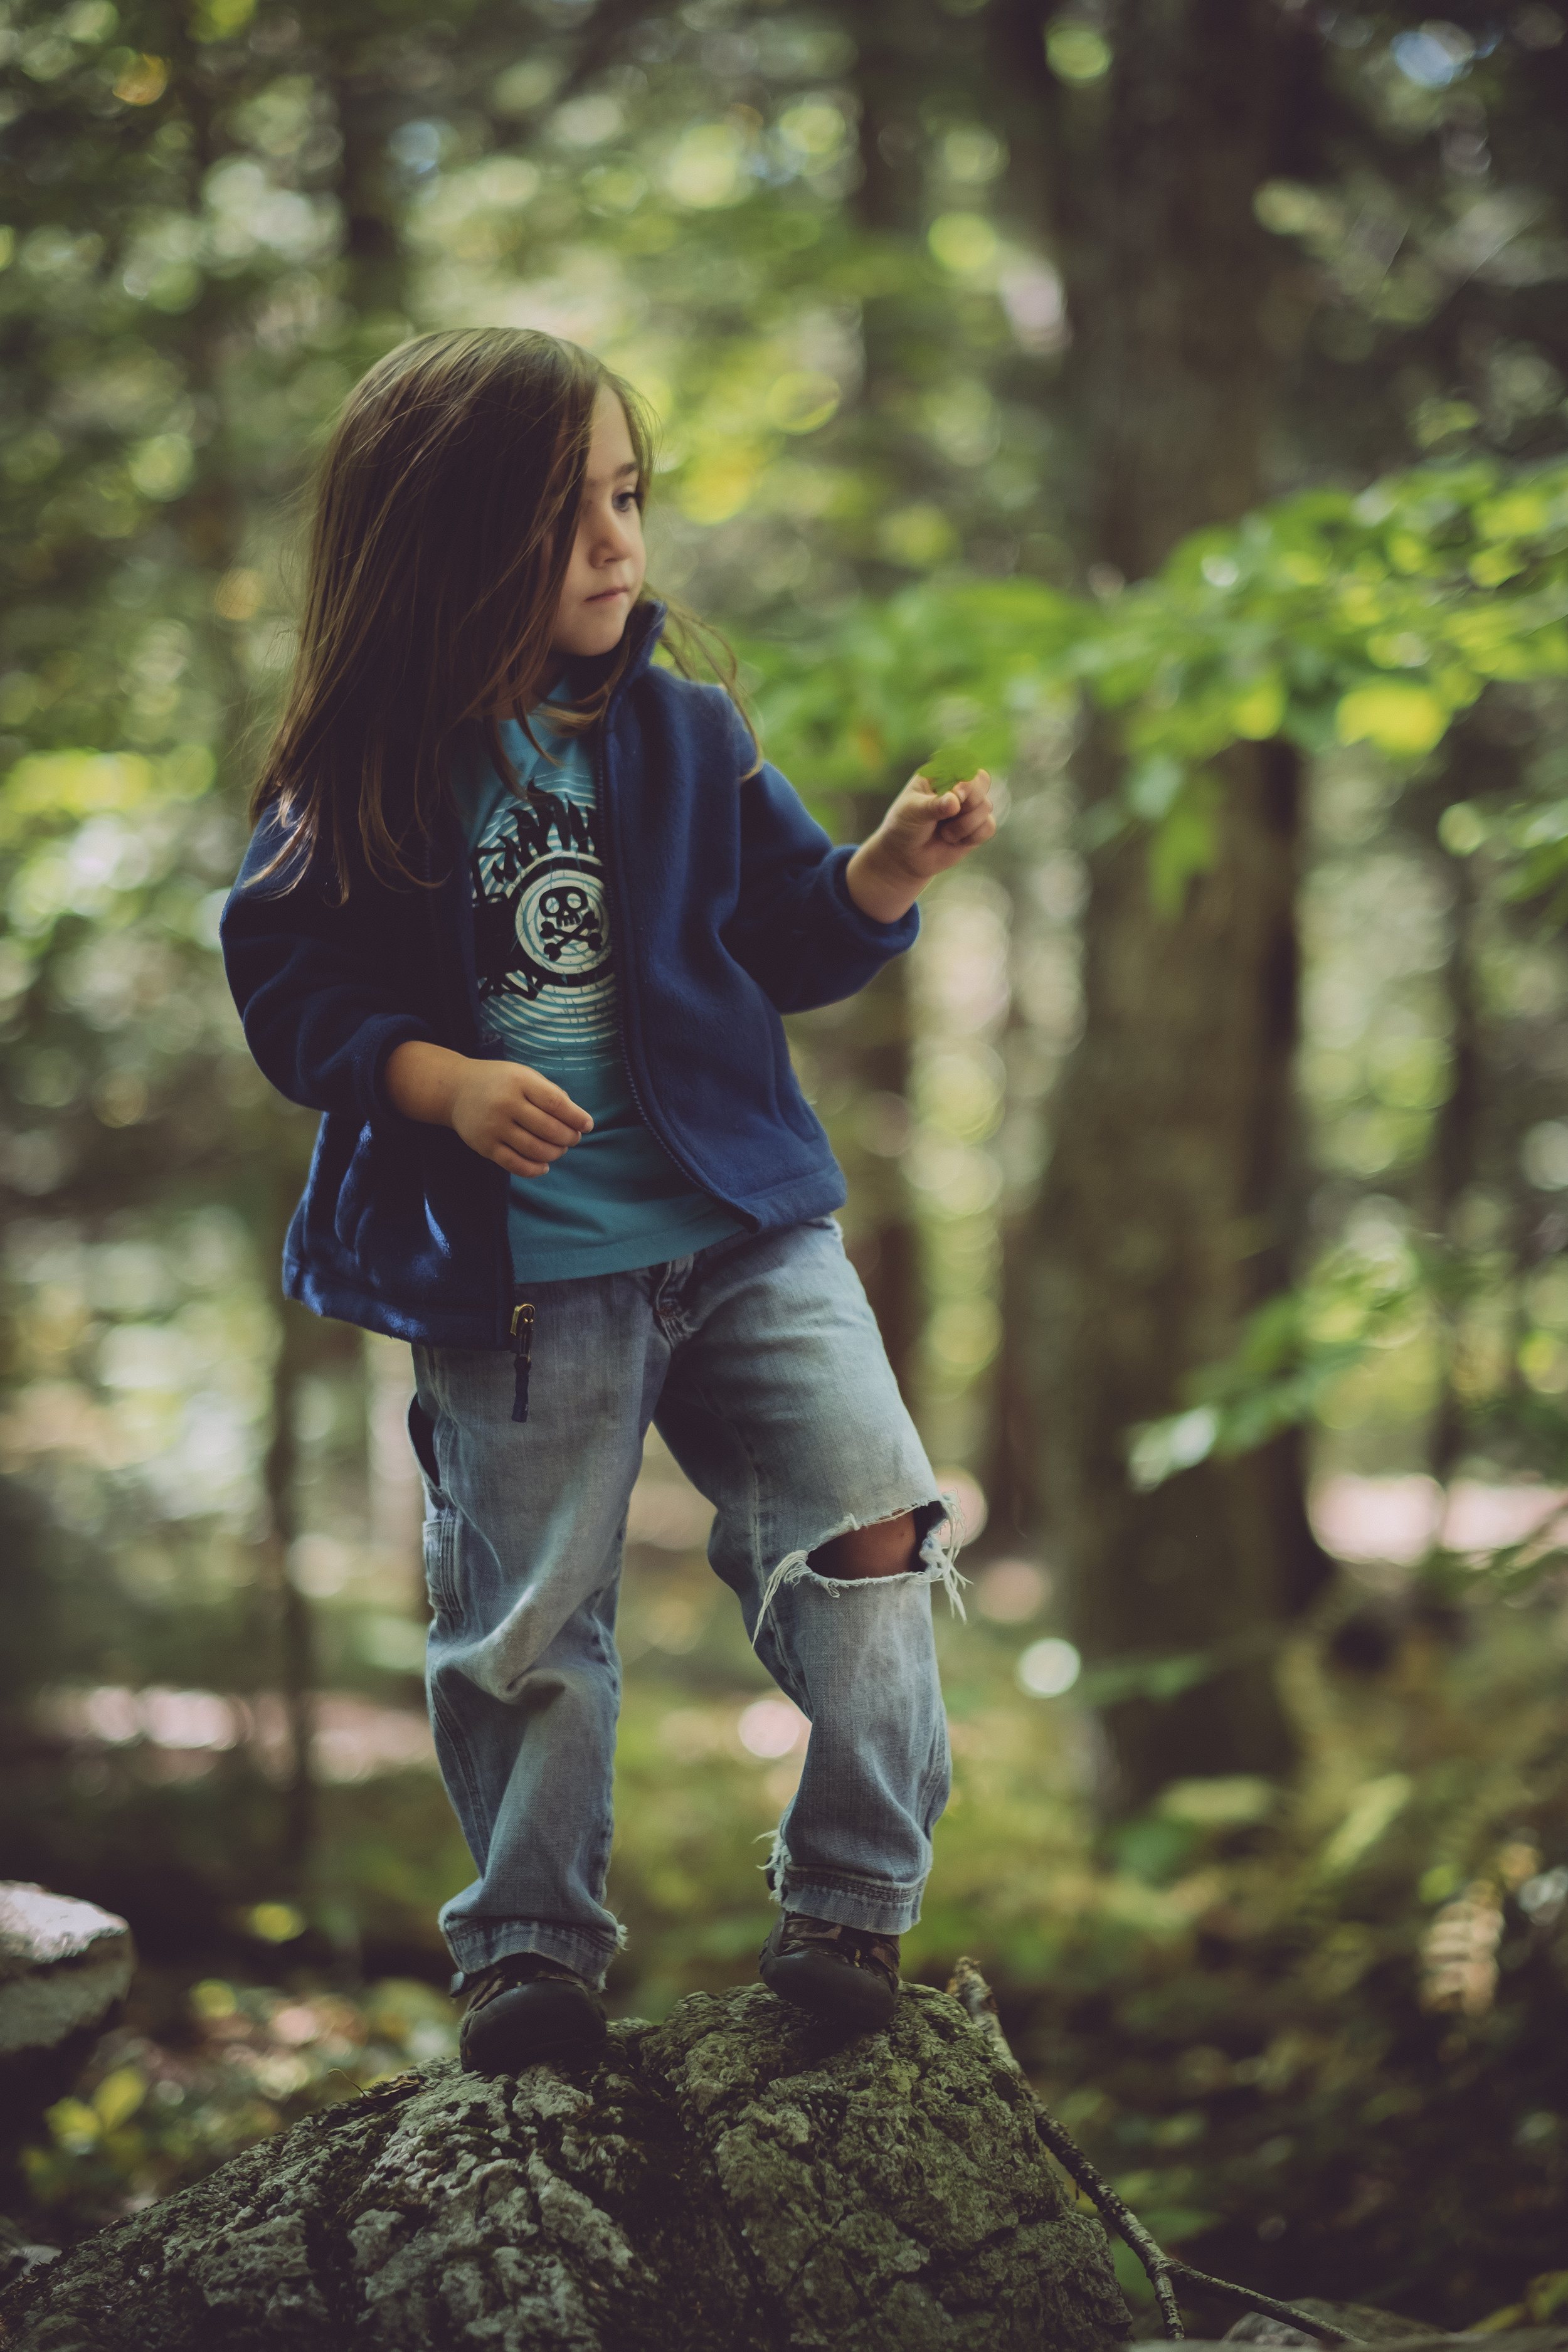 Environmental Child Portraits - Please Inquire For Pricing and Availability